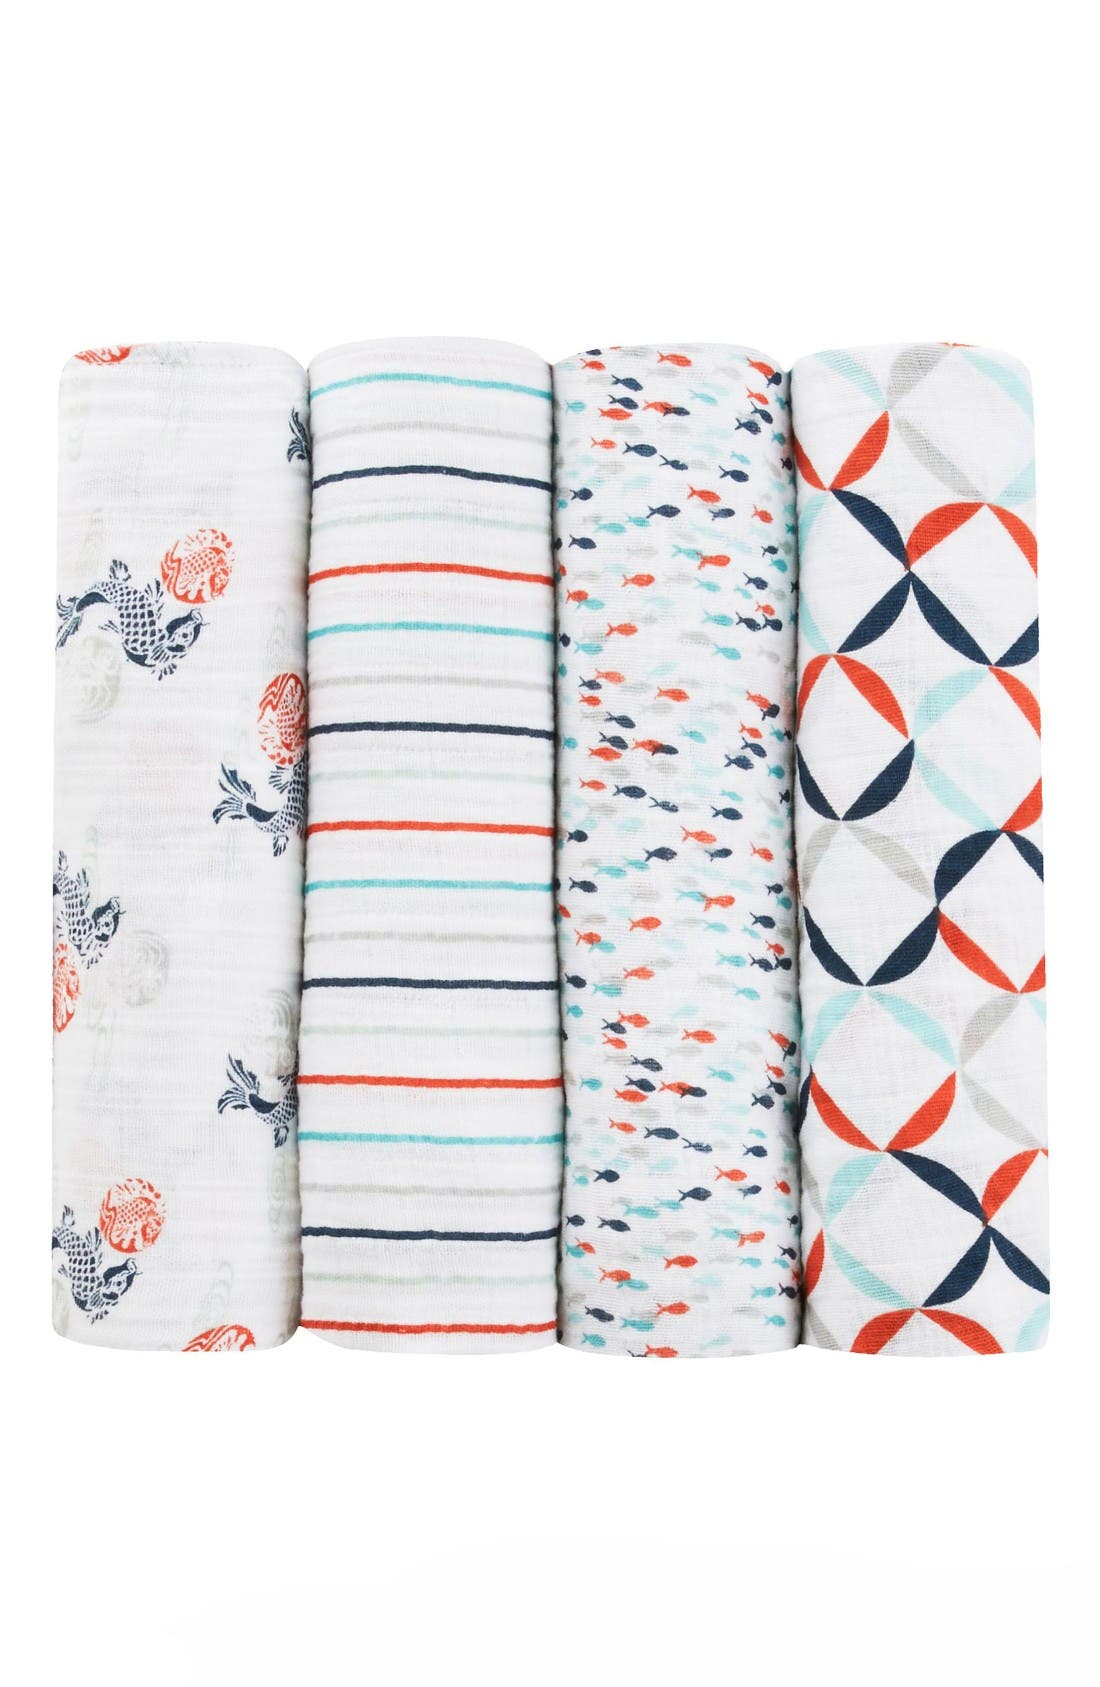 ADEN + ANAIS x Tea Collection 4-Pack Swaddling